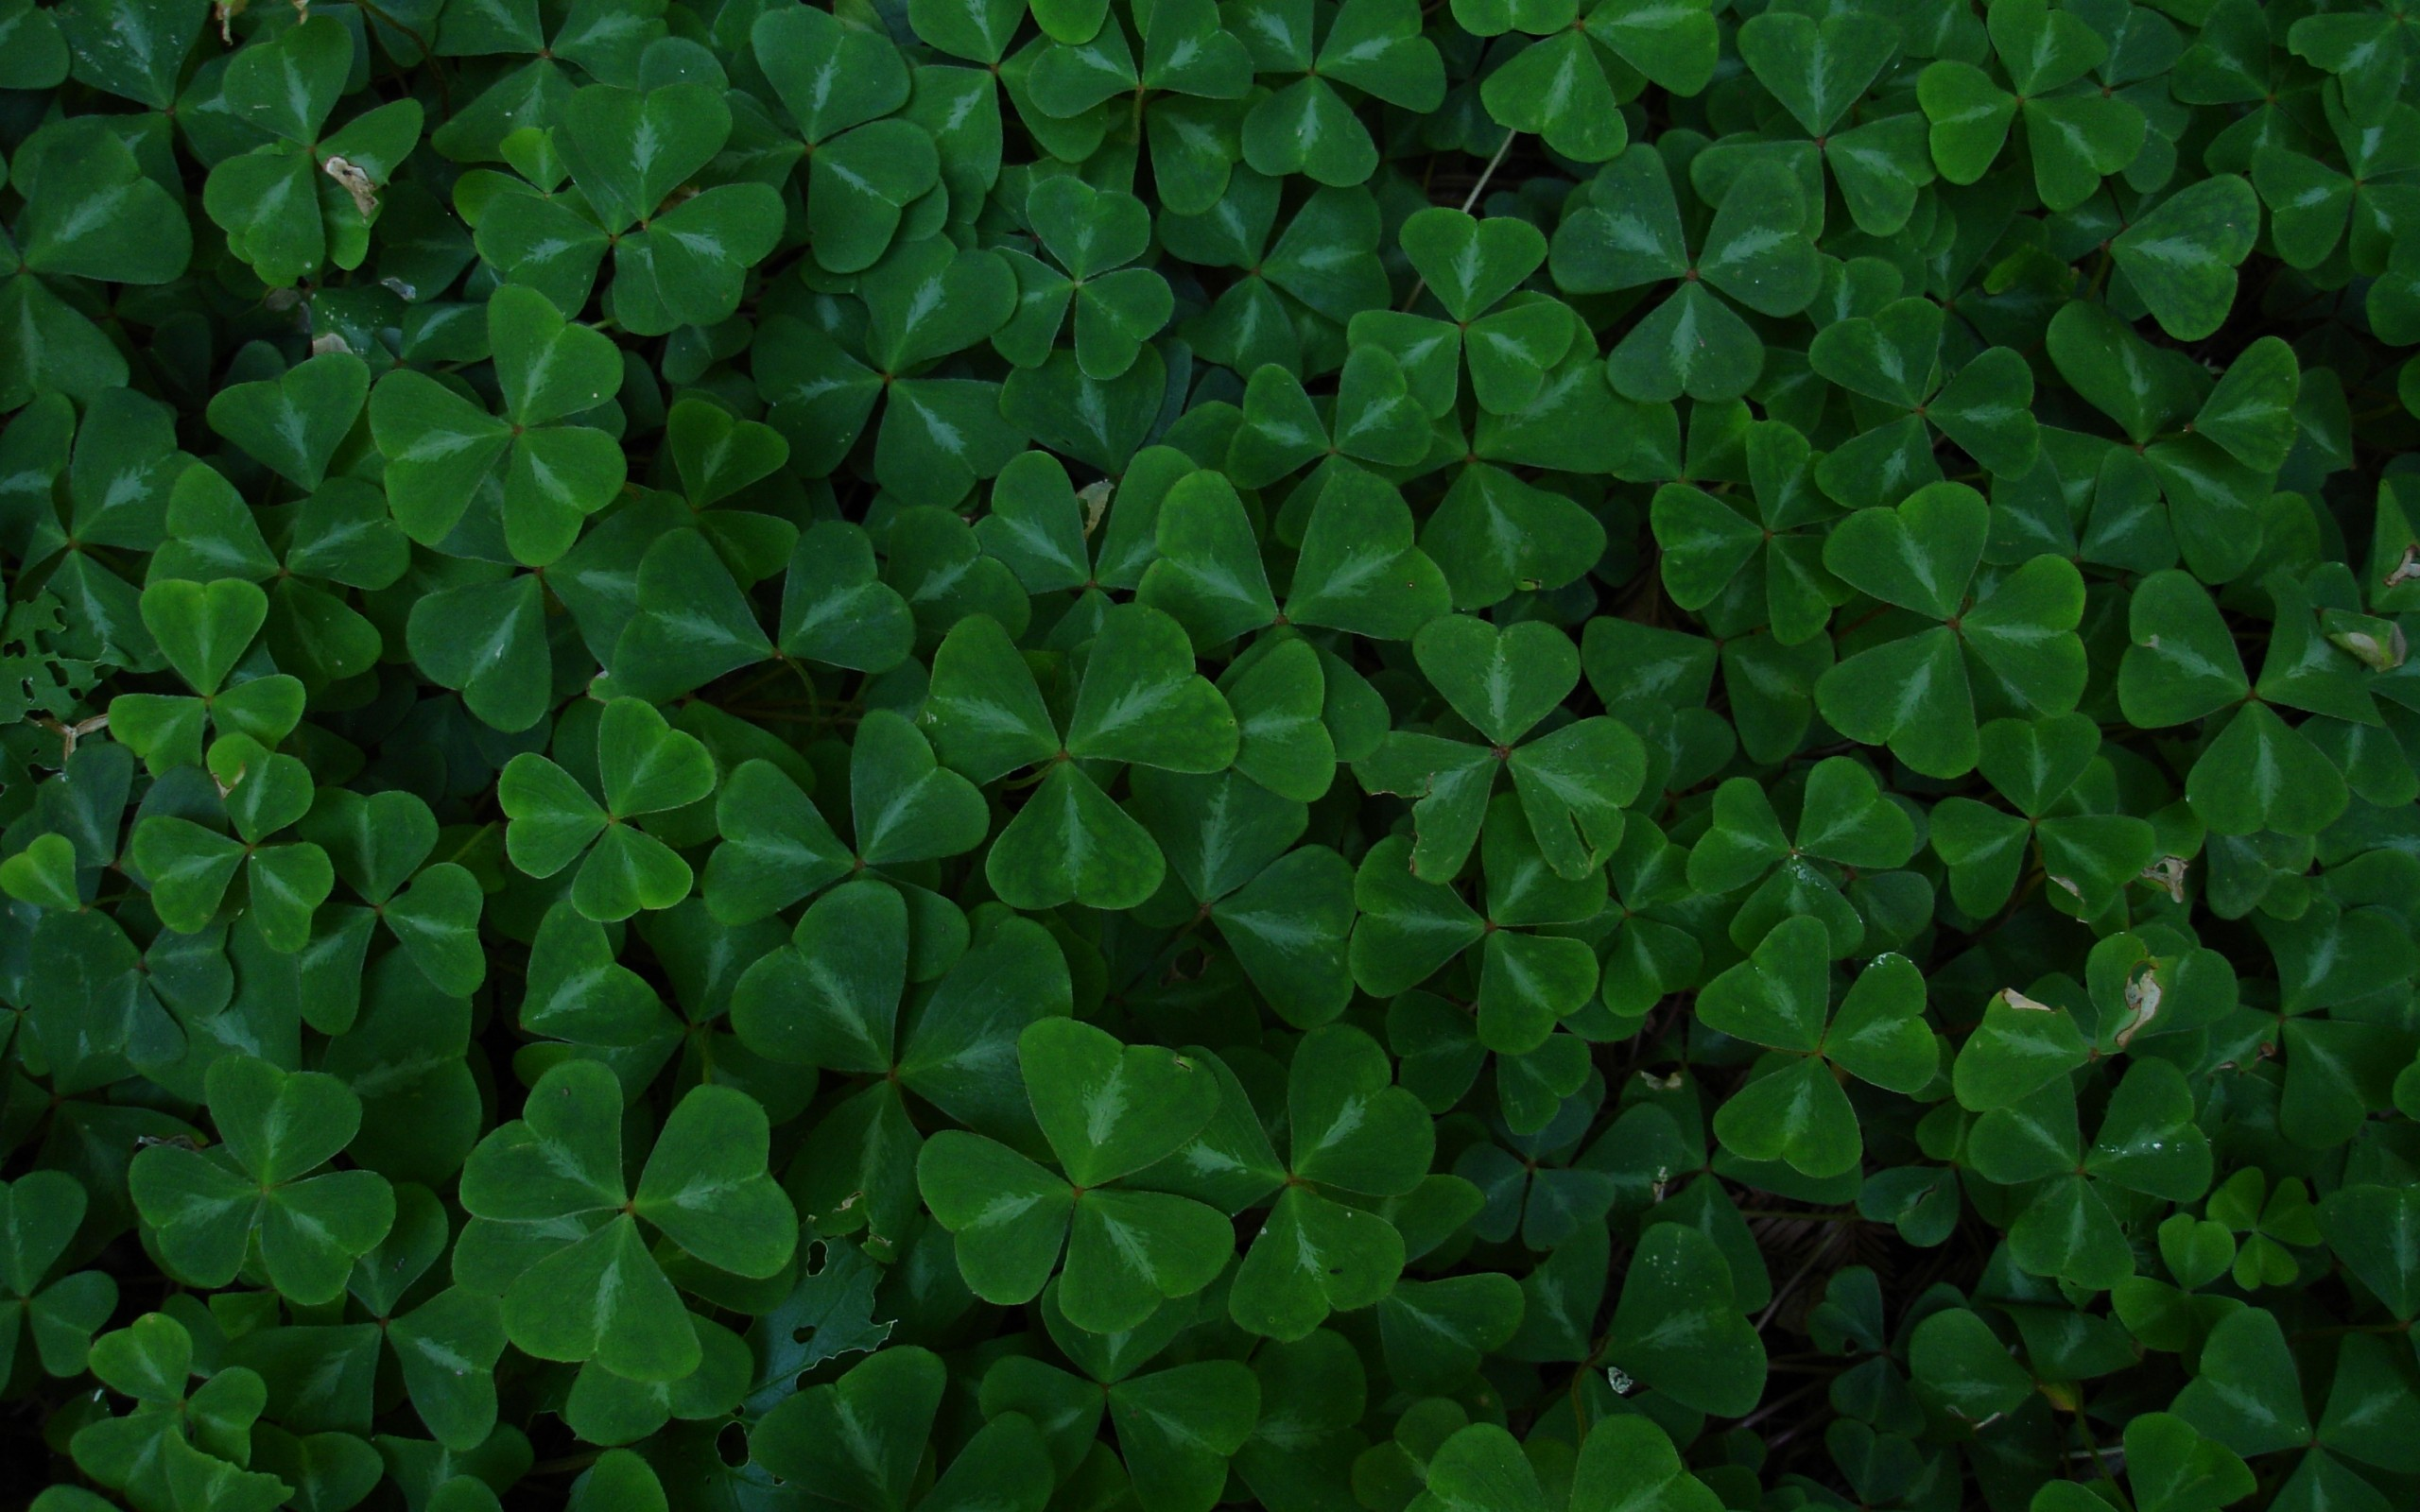 Shamrock Background Download Free Awesome Hd Wallpapers For